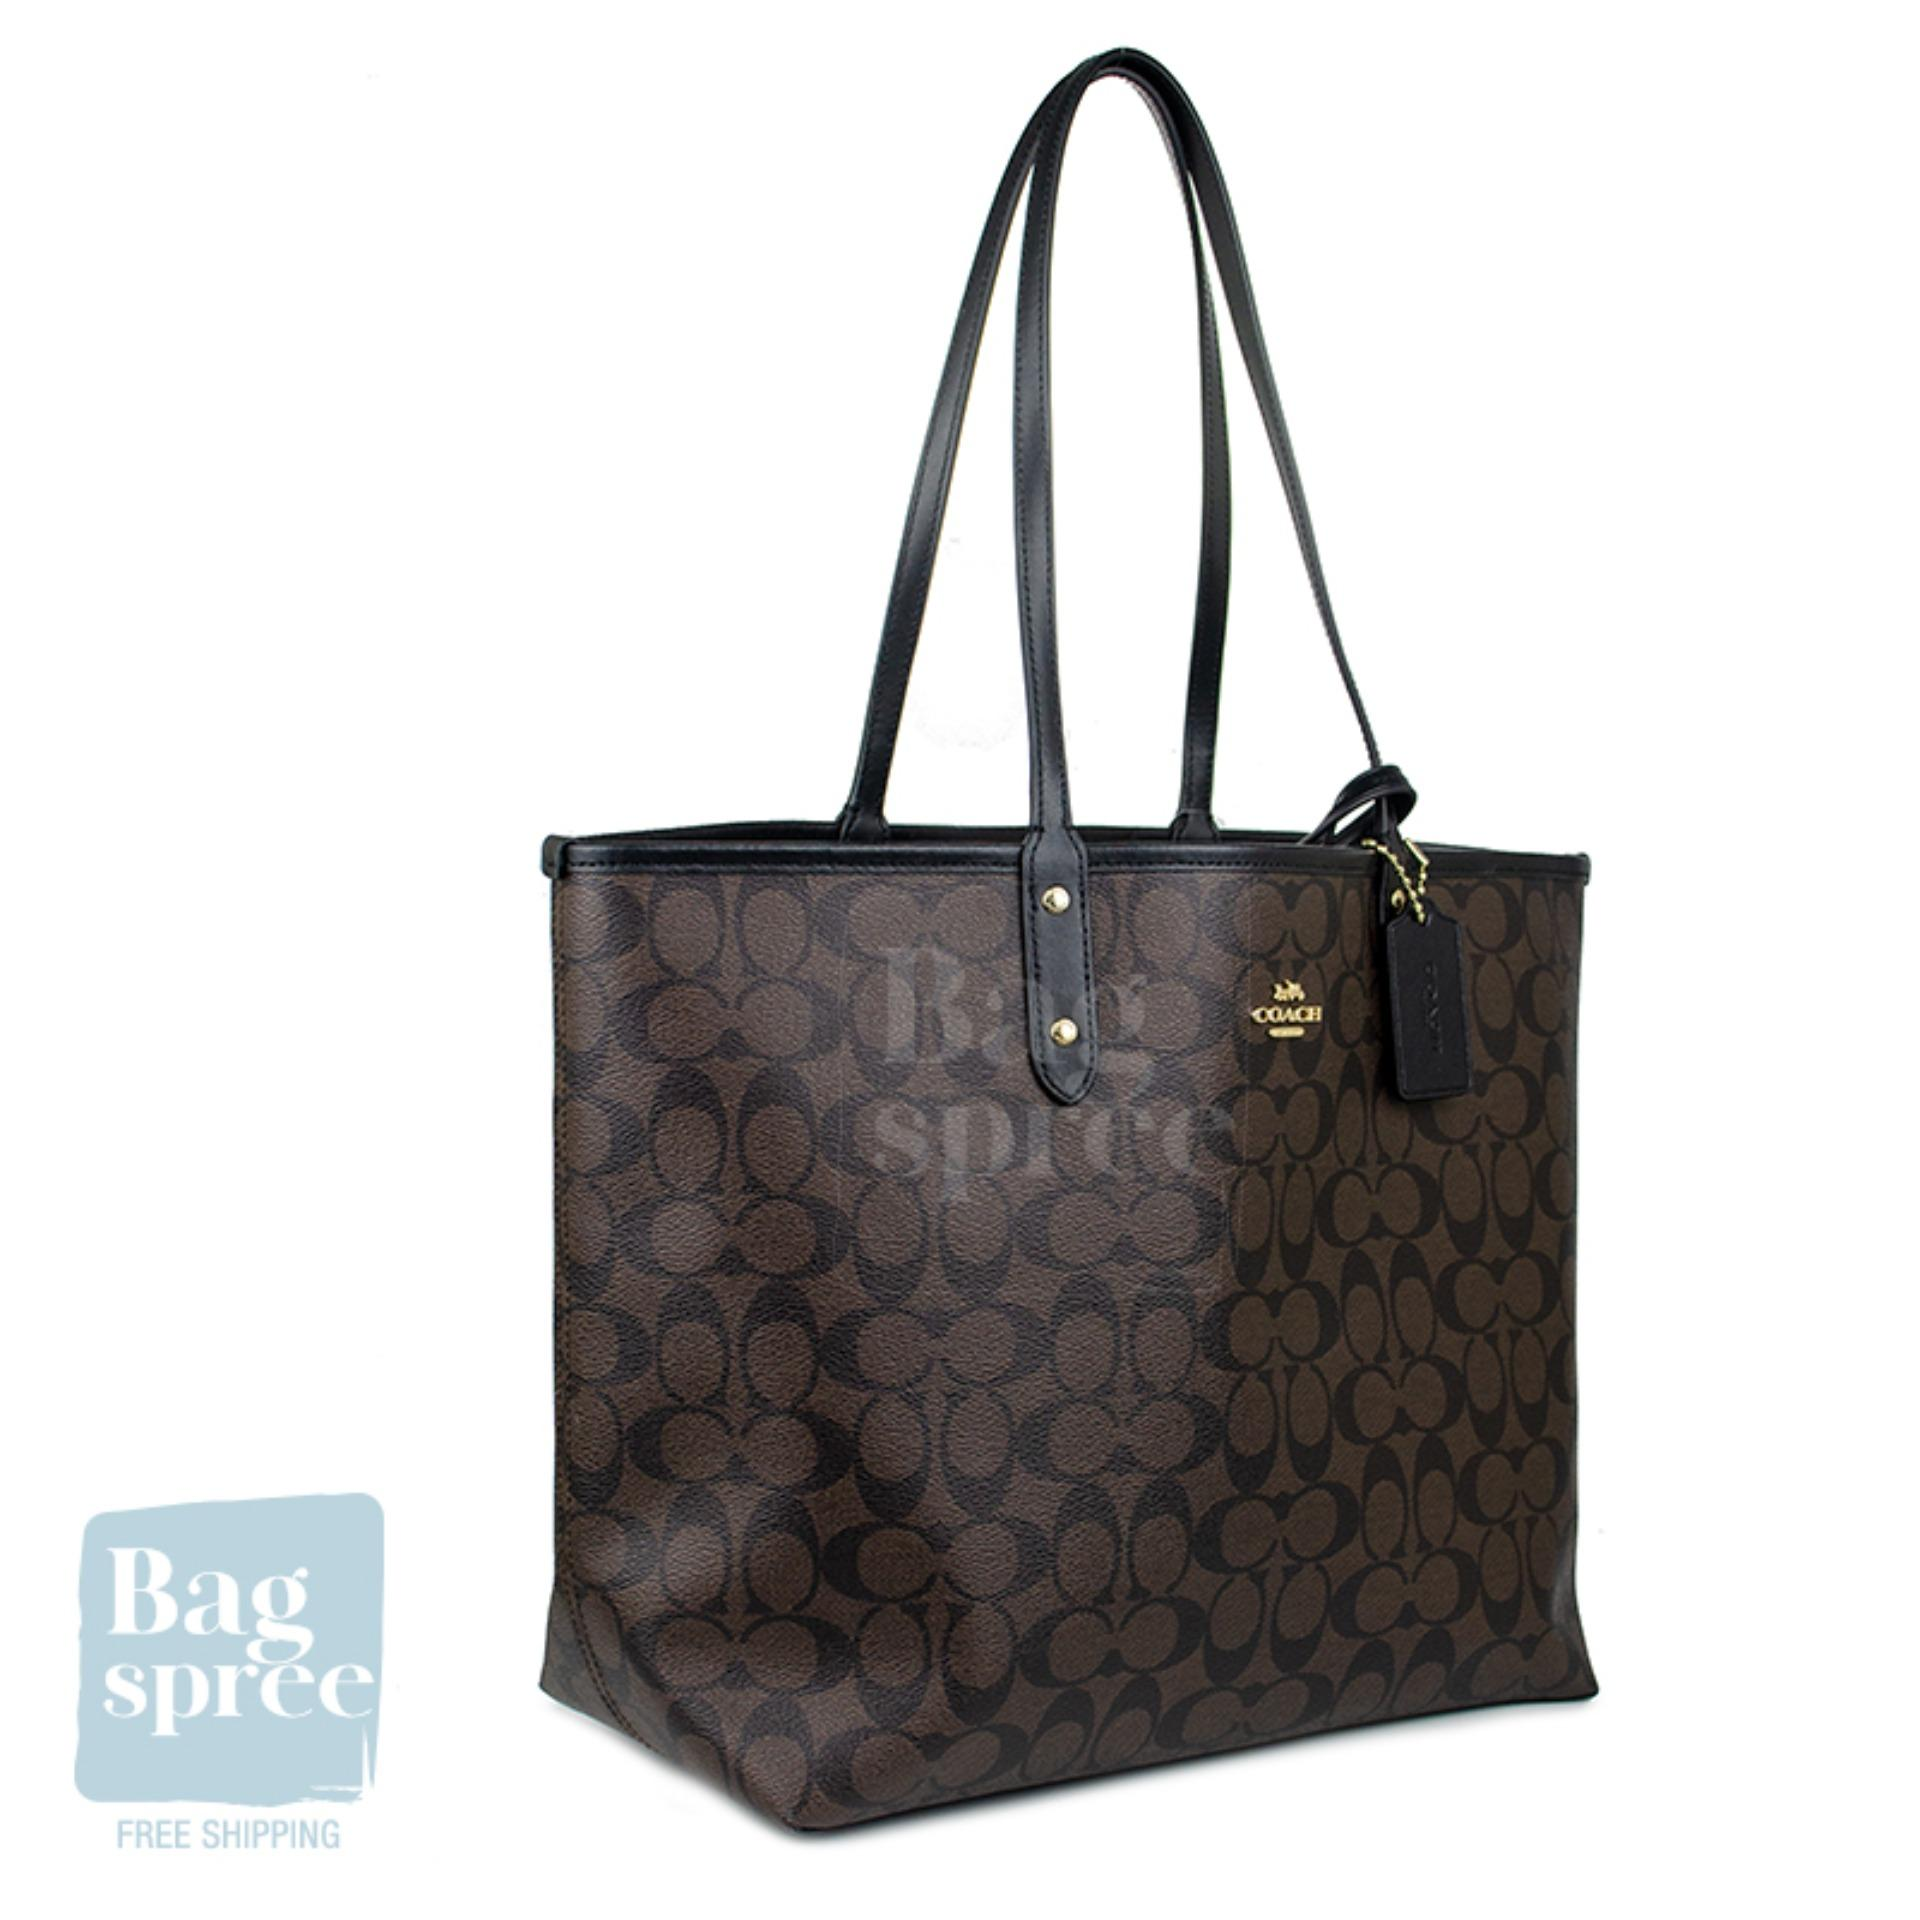 c1c589f41c729 *Authentic & Brand New* Coach Reversible City Tote In Signature Brown  Canvas Bag F36658